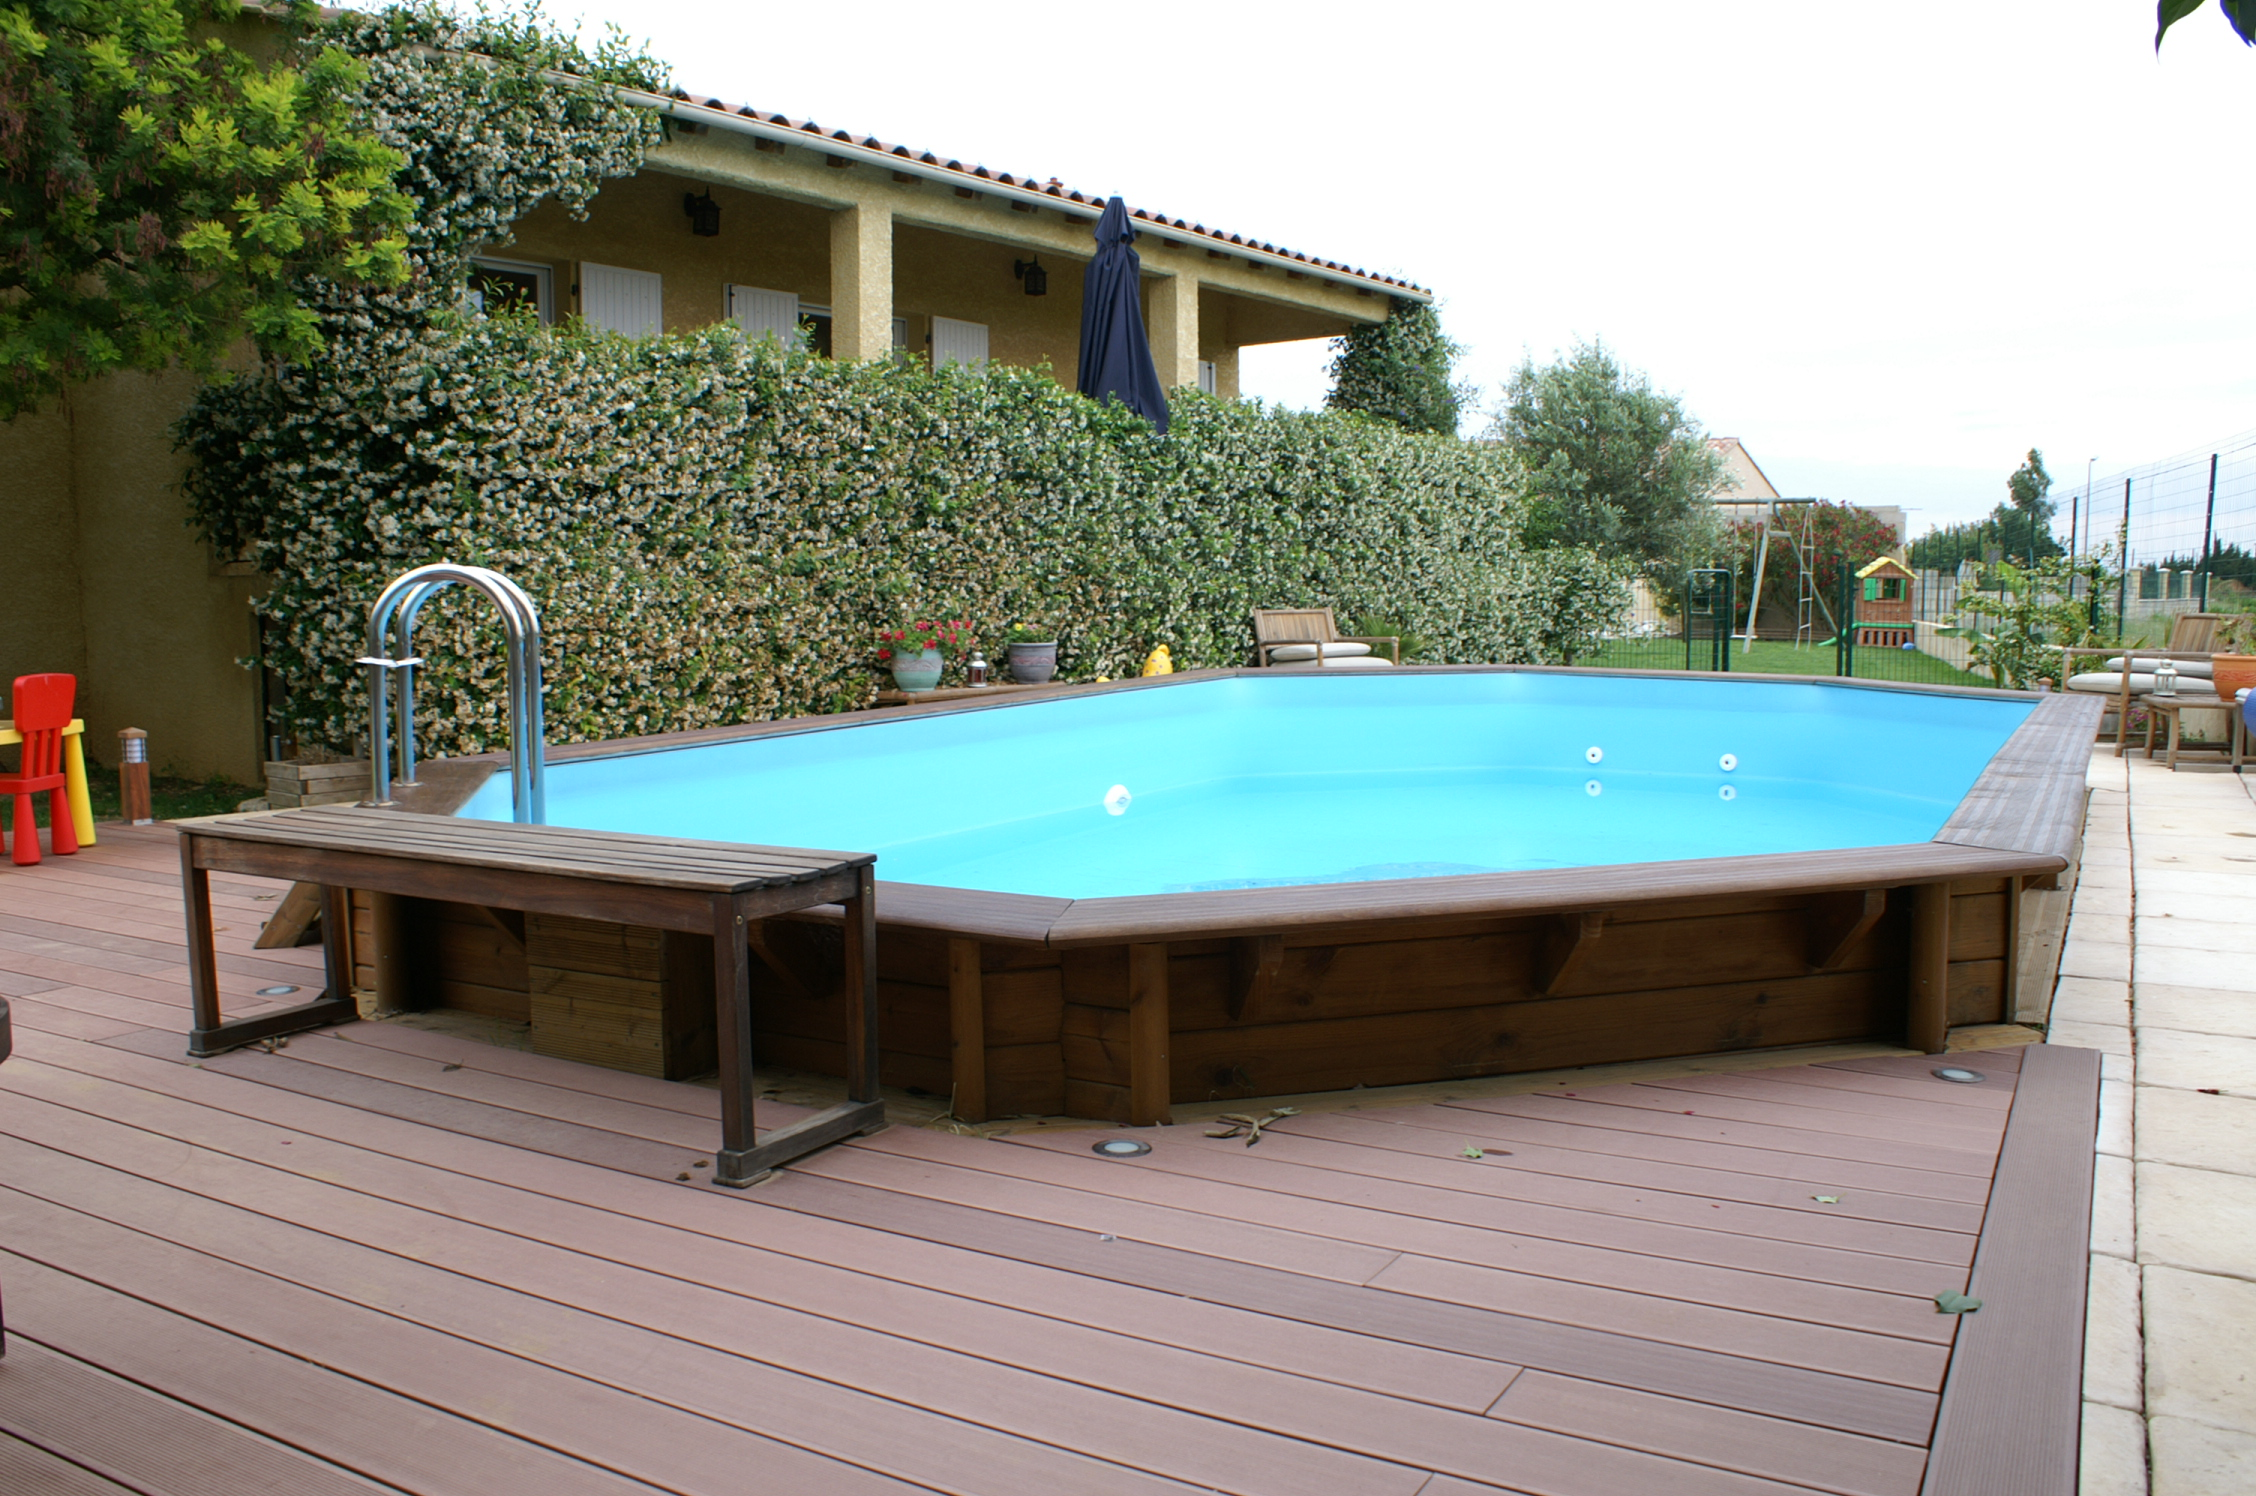 Piscine hors sol nimes for Piscine hors sol durable